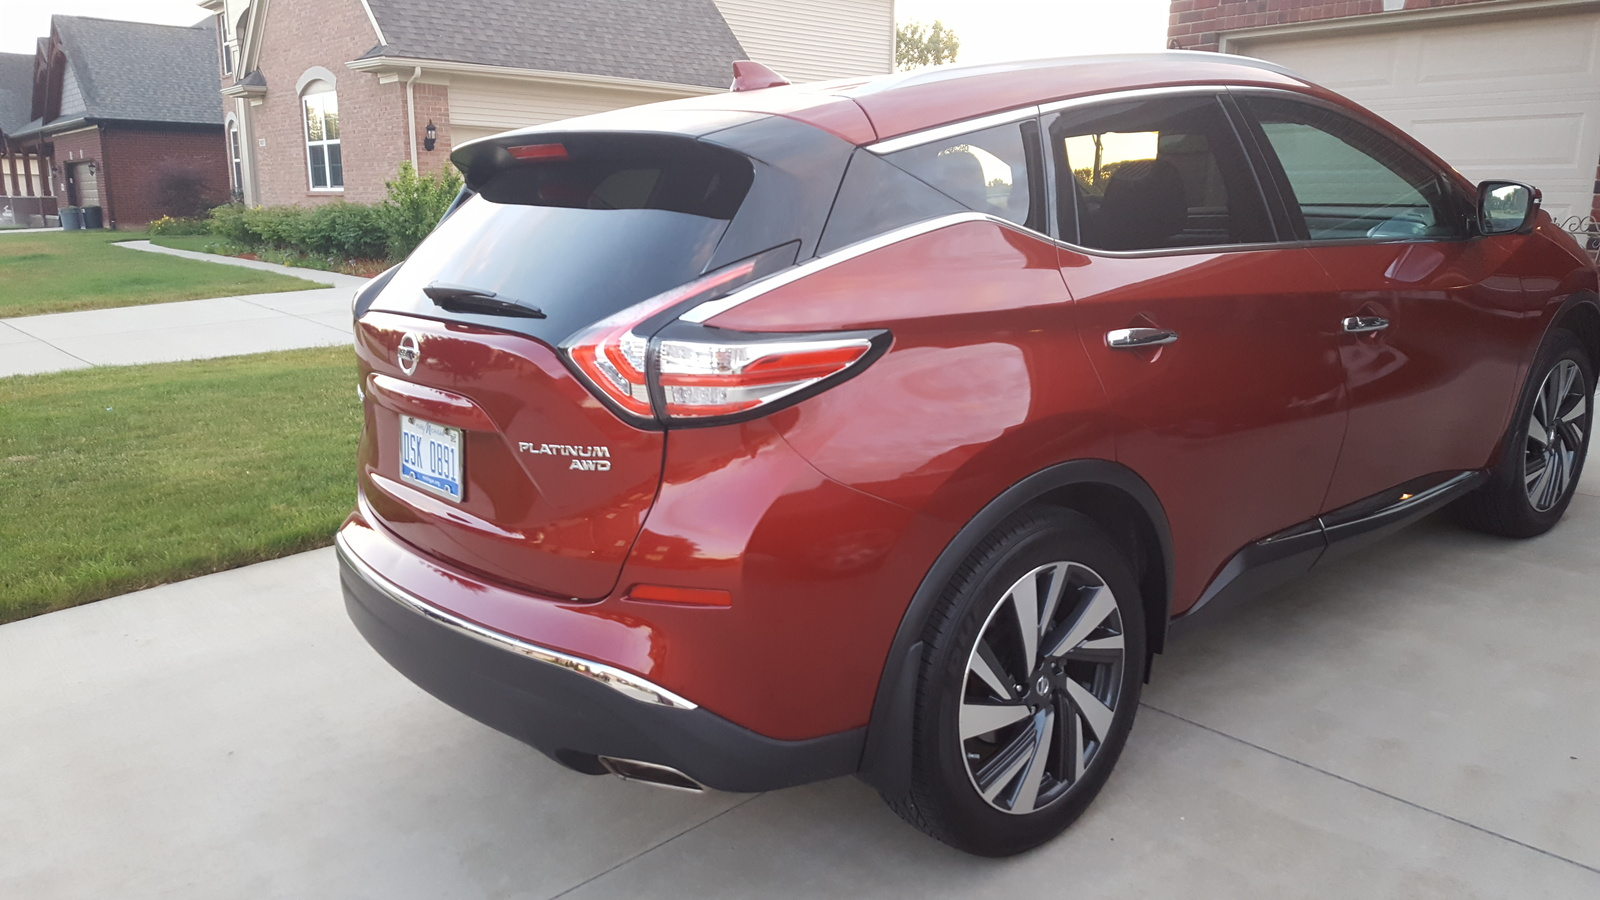 Picture of 2017 Nissan Murano 2017.5 Platinum AWD